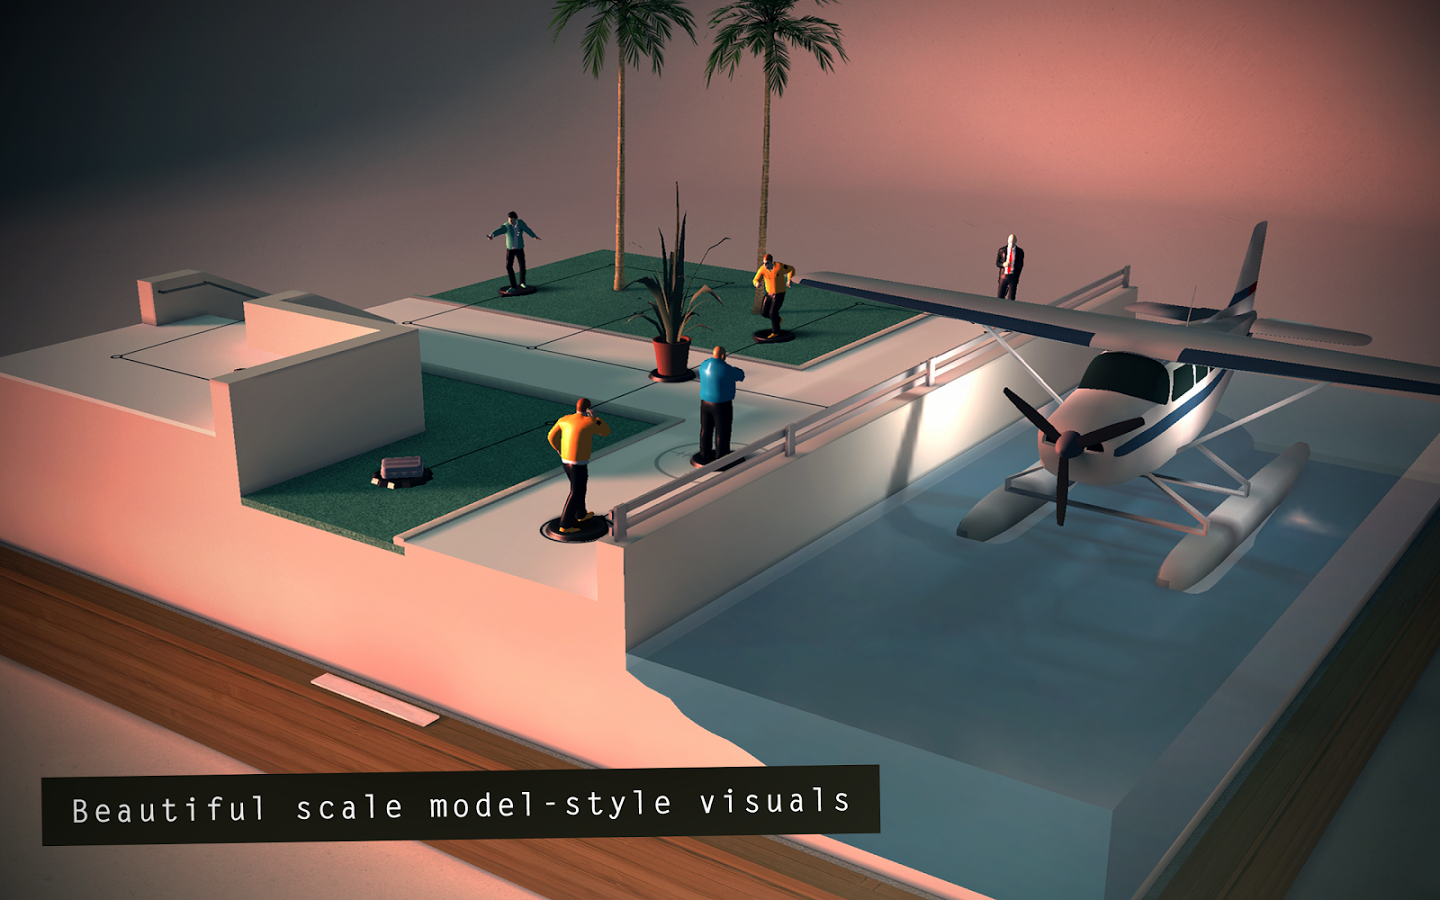 Modojo | Hitman GO Will Be Making Its PS Vita Debut in 2016